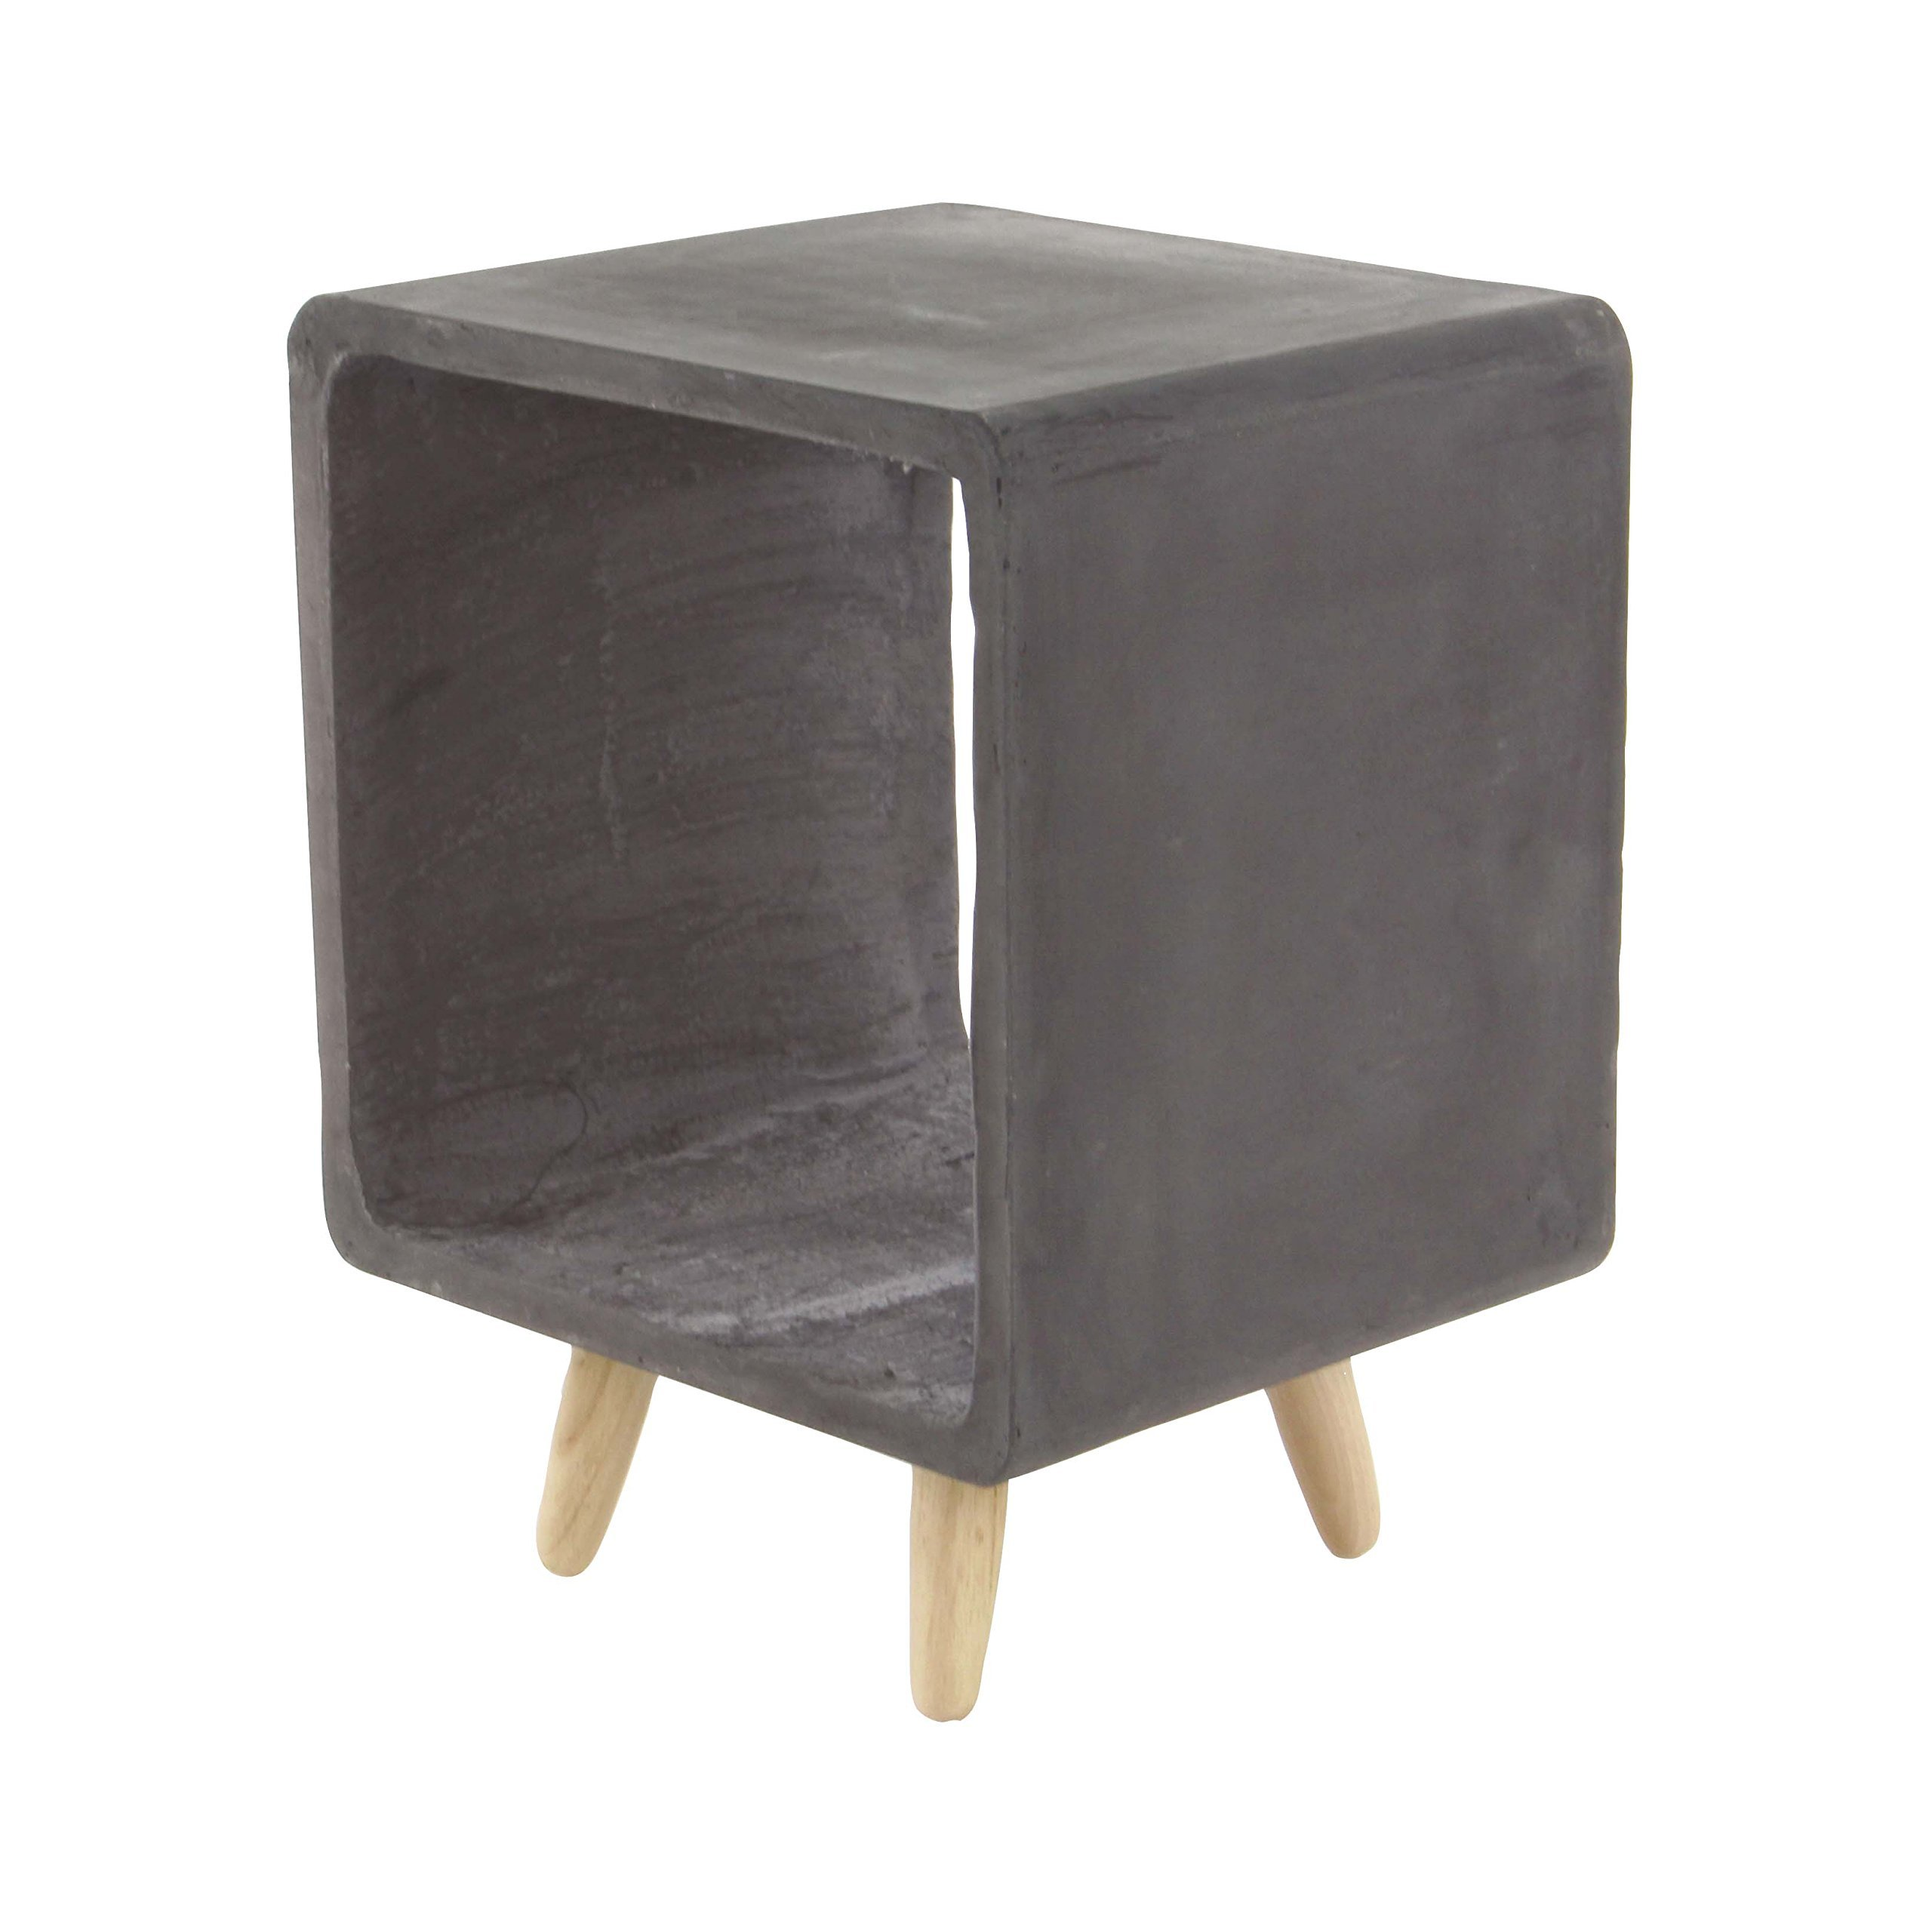 Deco 79 Fiber Clay and Wood Table, Black/Lightbrown by Deco 79 (Image #1)